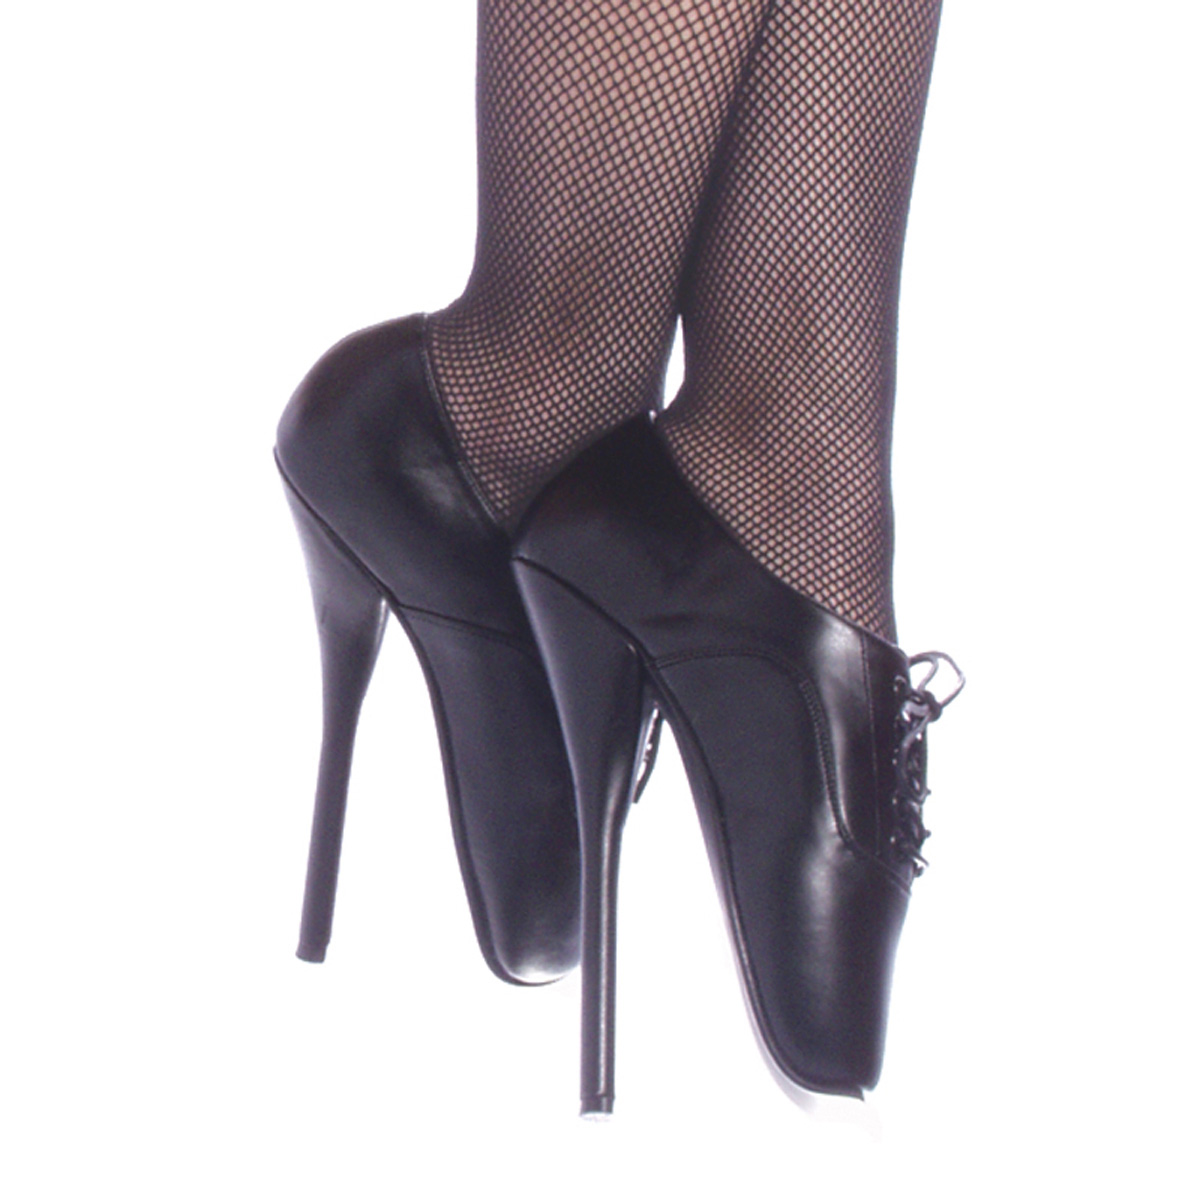 "DEVIOUS BALLET-18 7"" Heel Shoes/Blk Le"